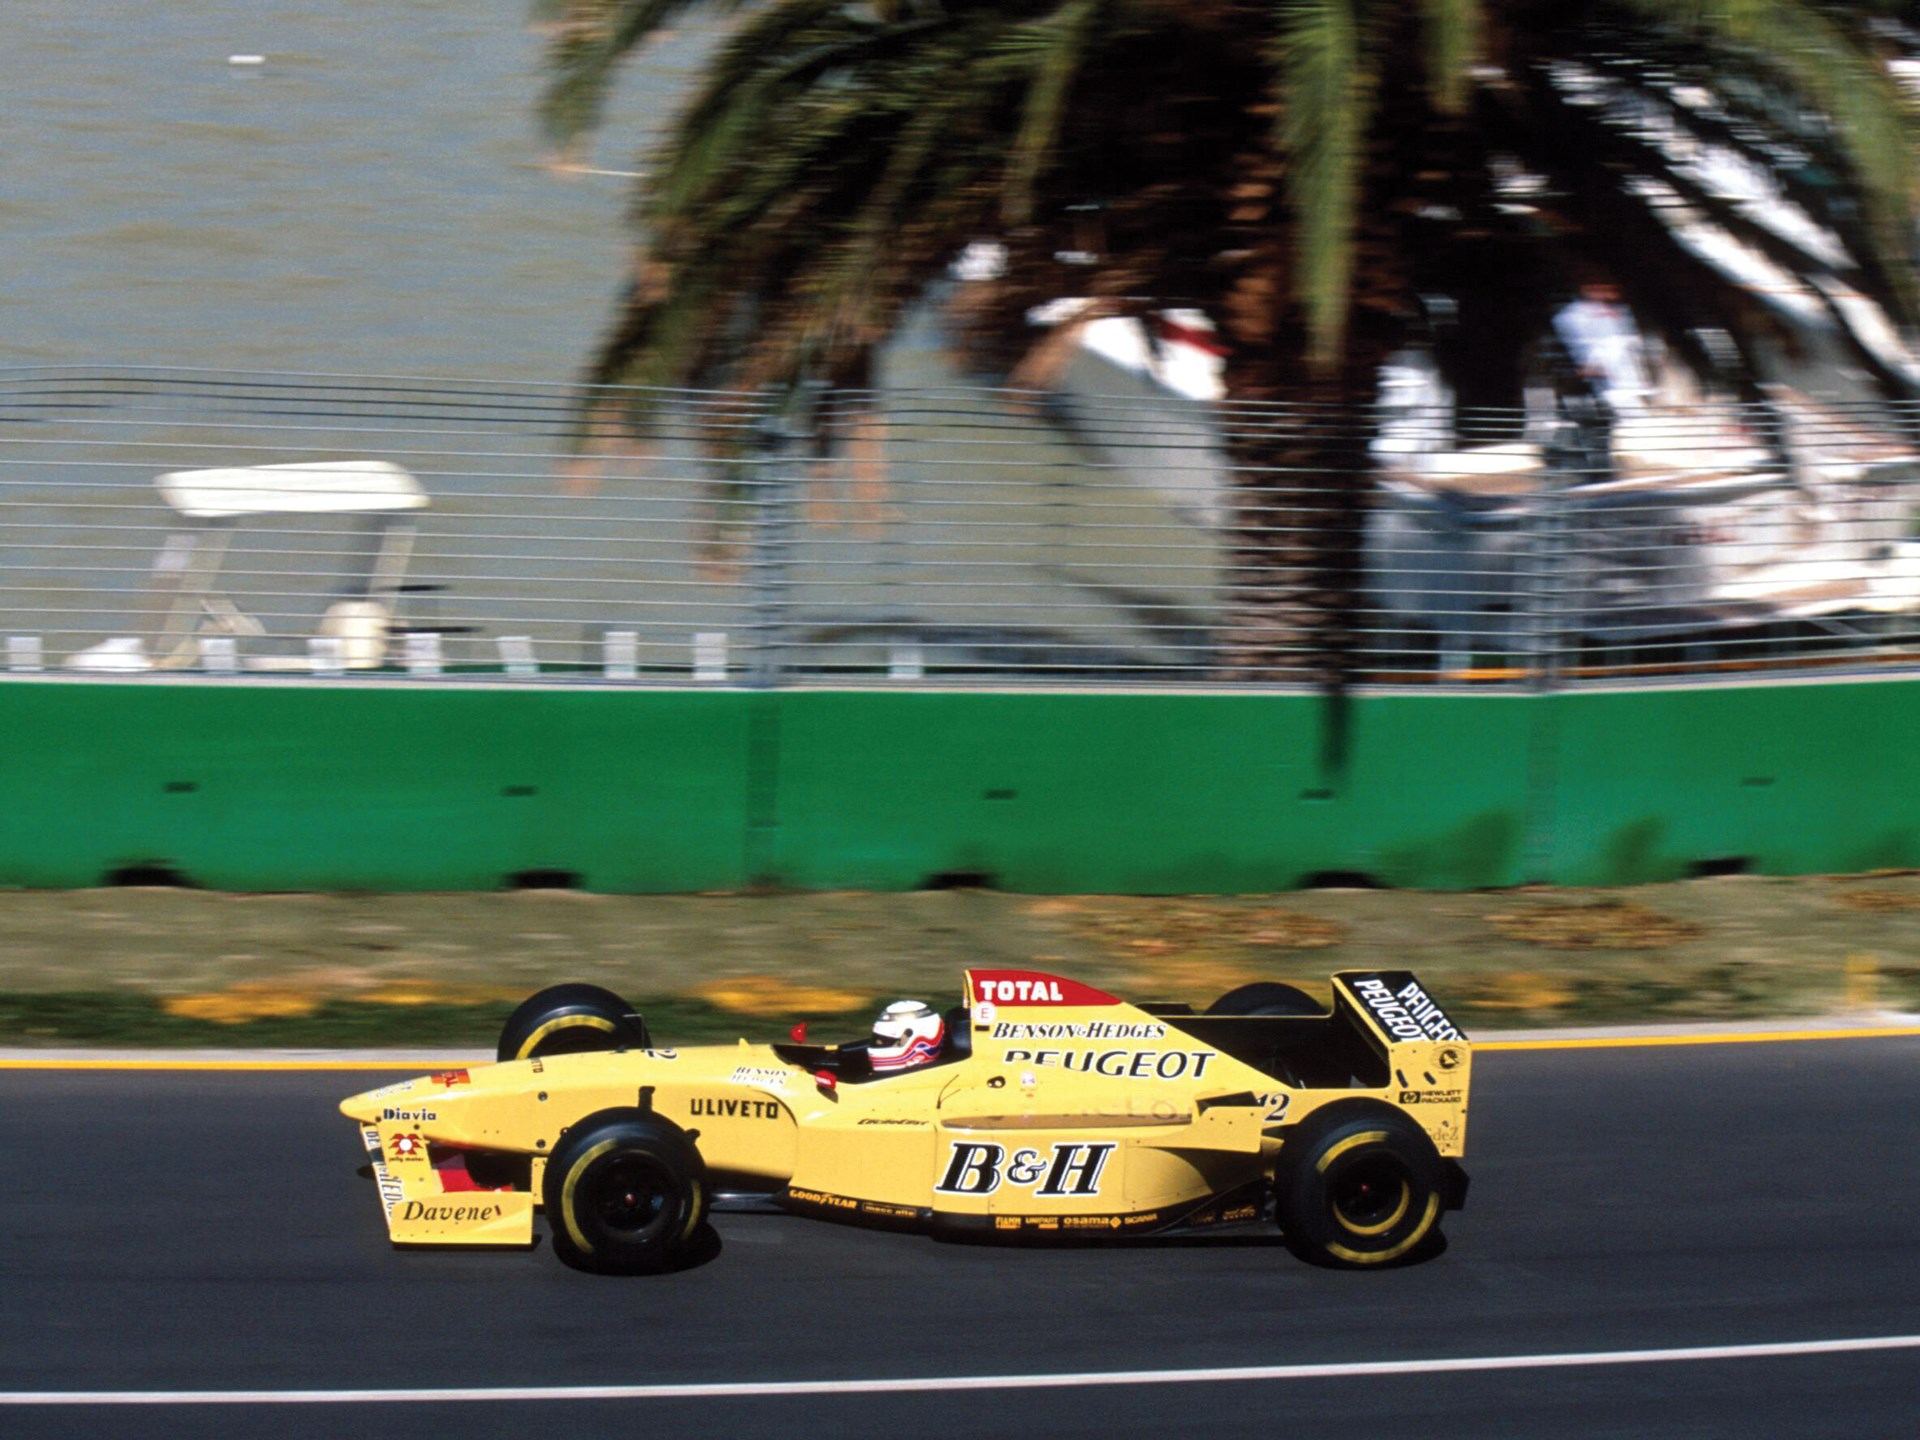 Martin Brundle behind the wheel of the Jordan at the 1996 Australian Grand Prix